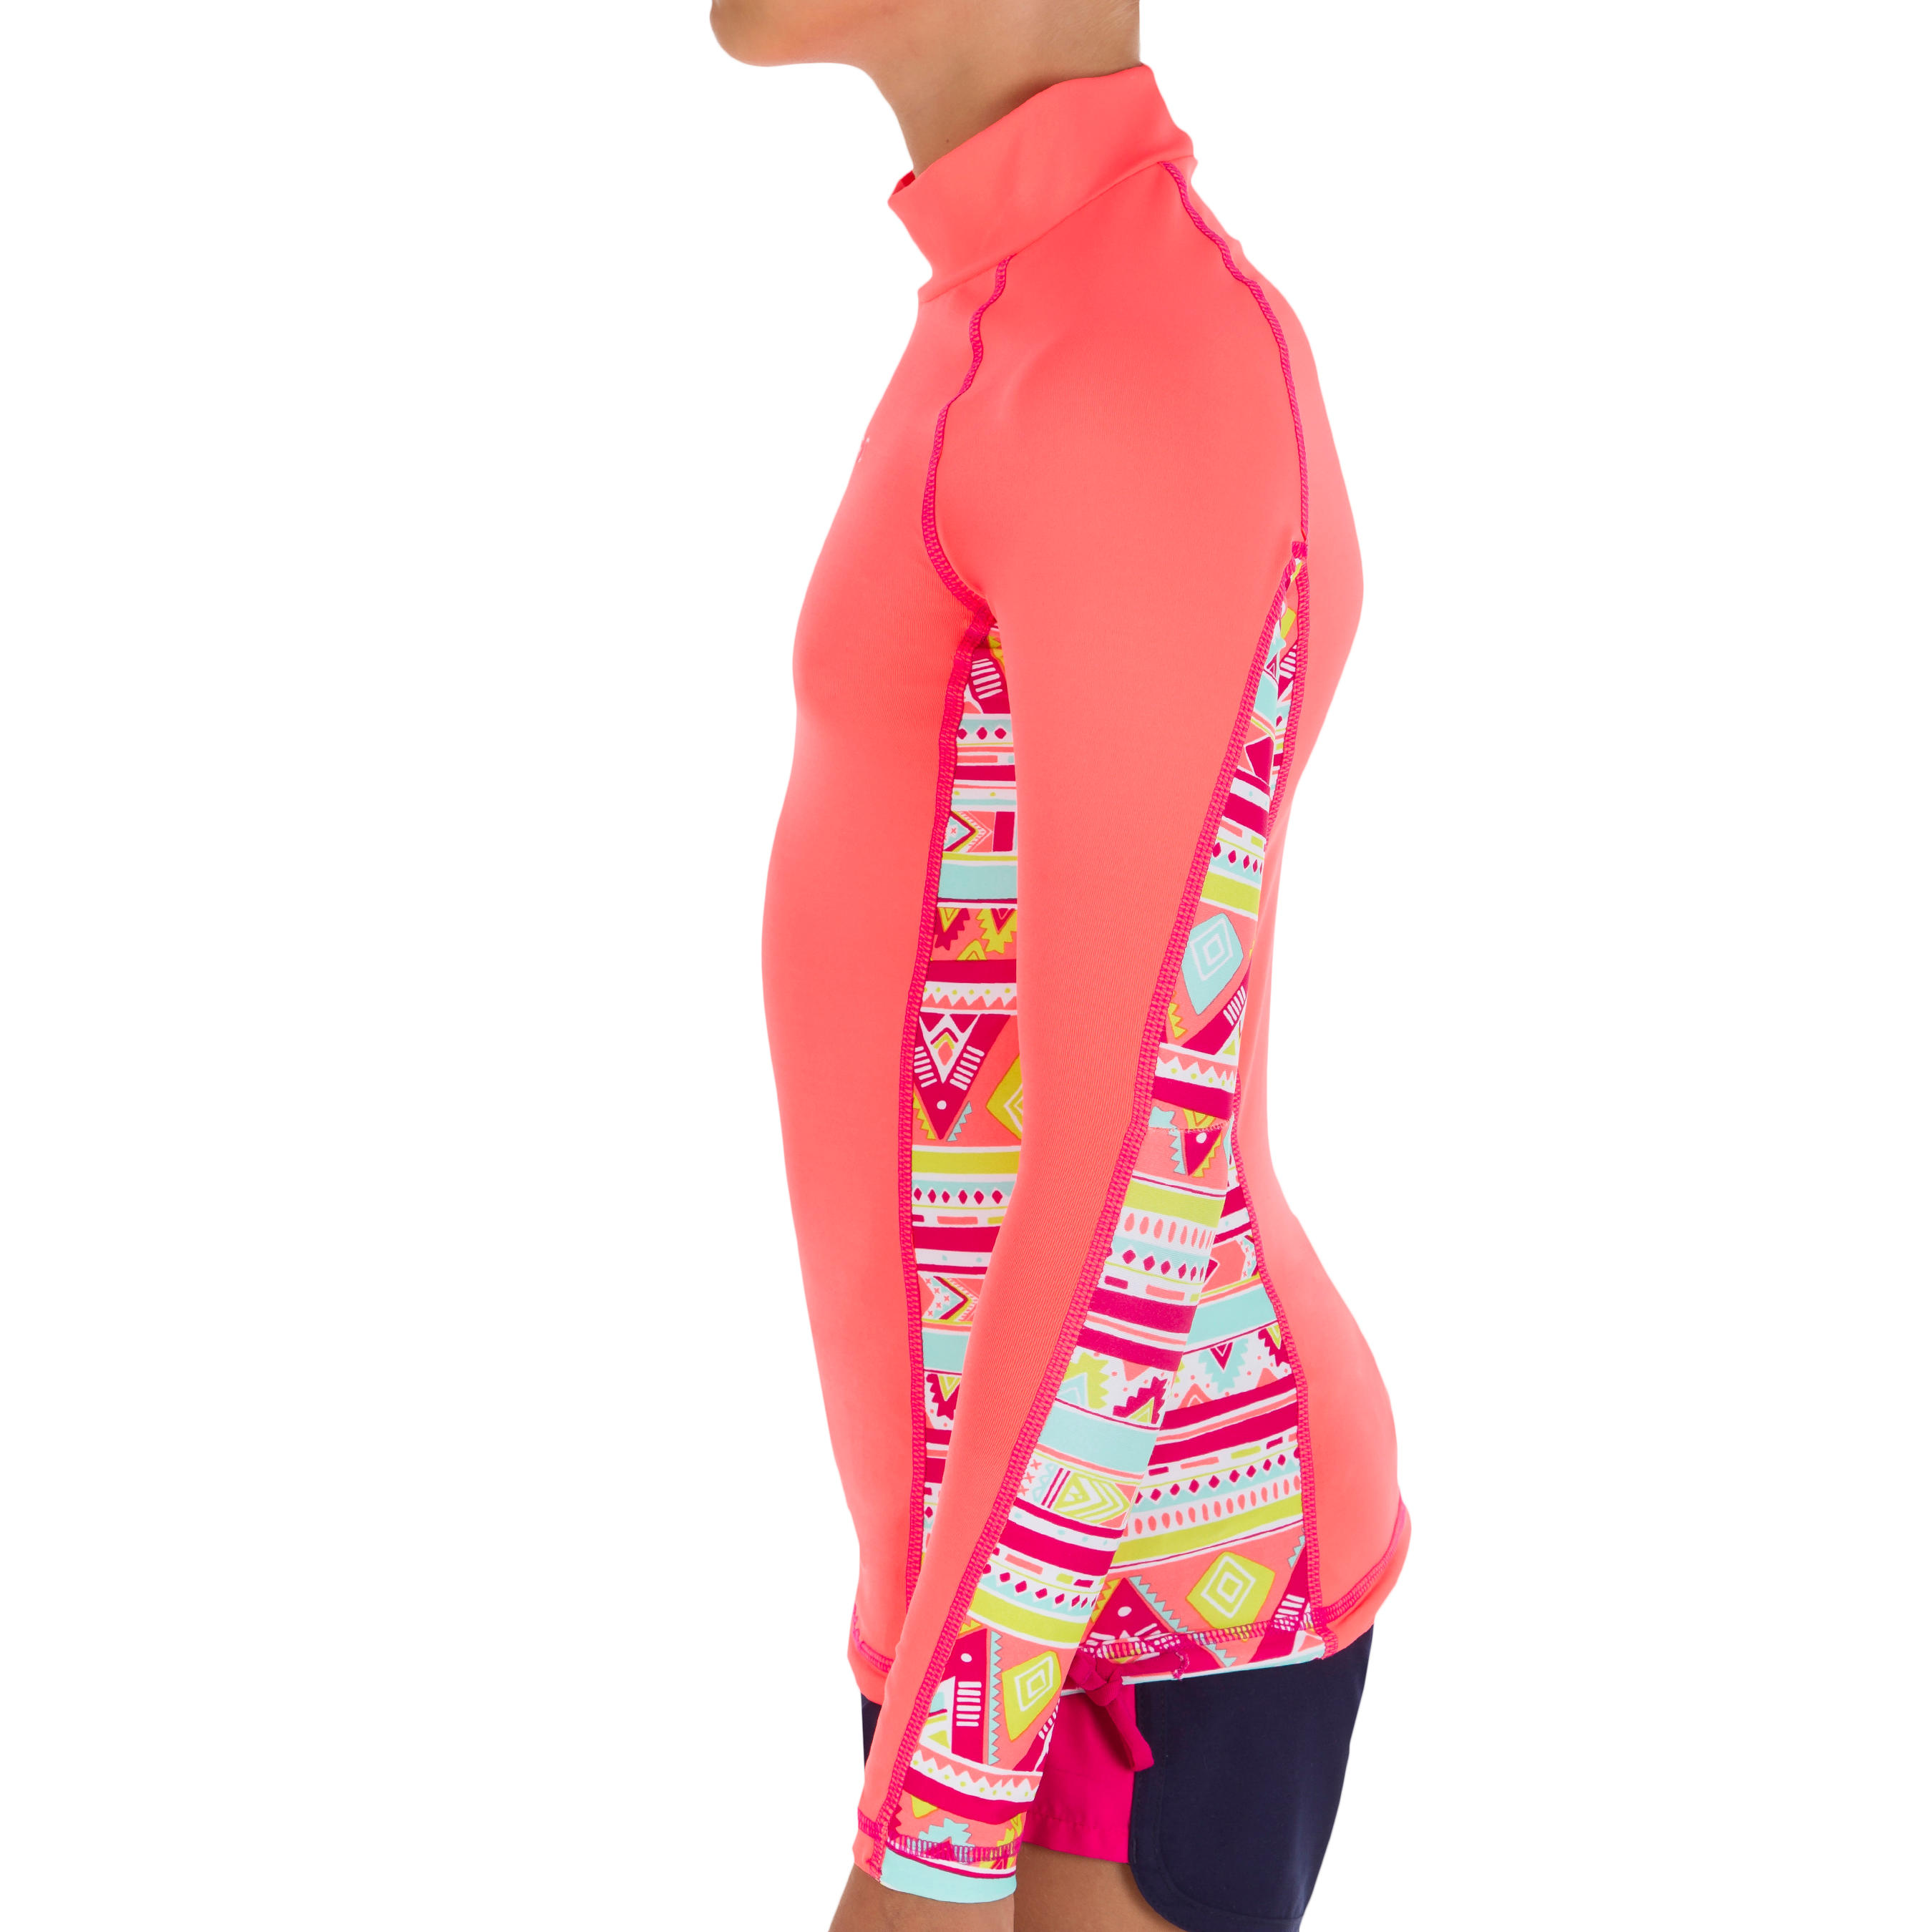 500 Children's Long Sleeve UV Protection Top Surfing T-Shirt - Pink